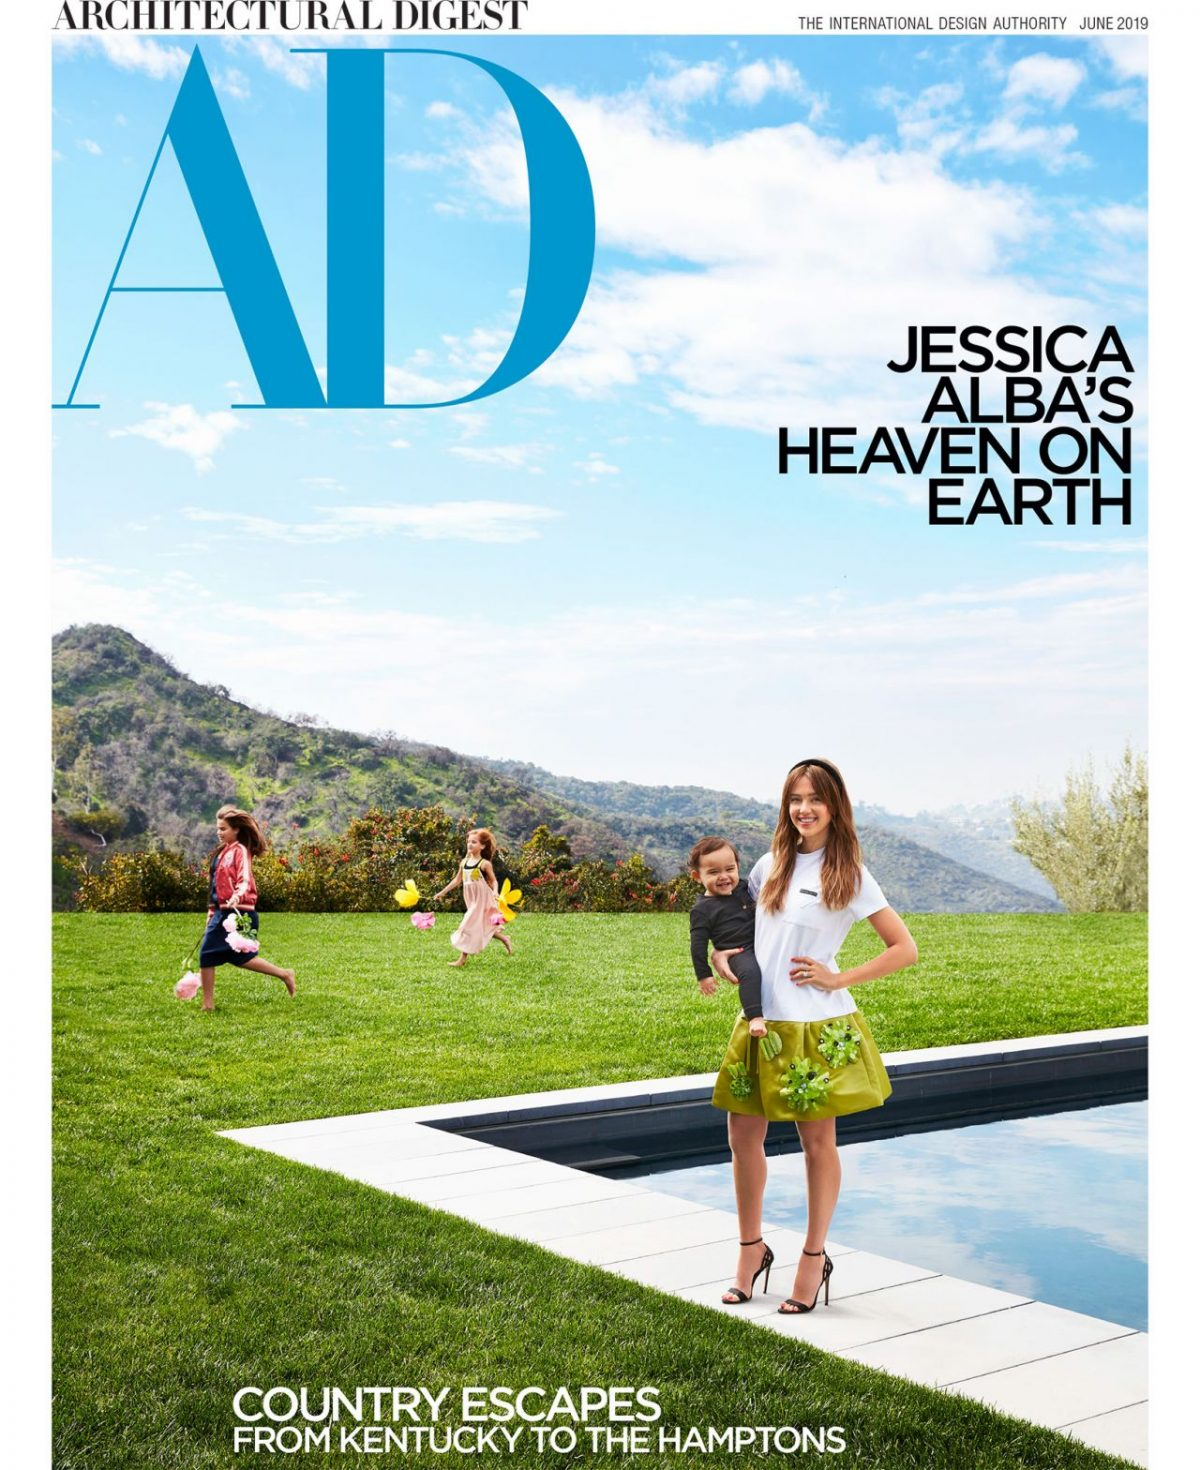 Architectural Digest Features Hollander Design Project